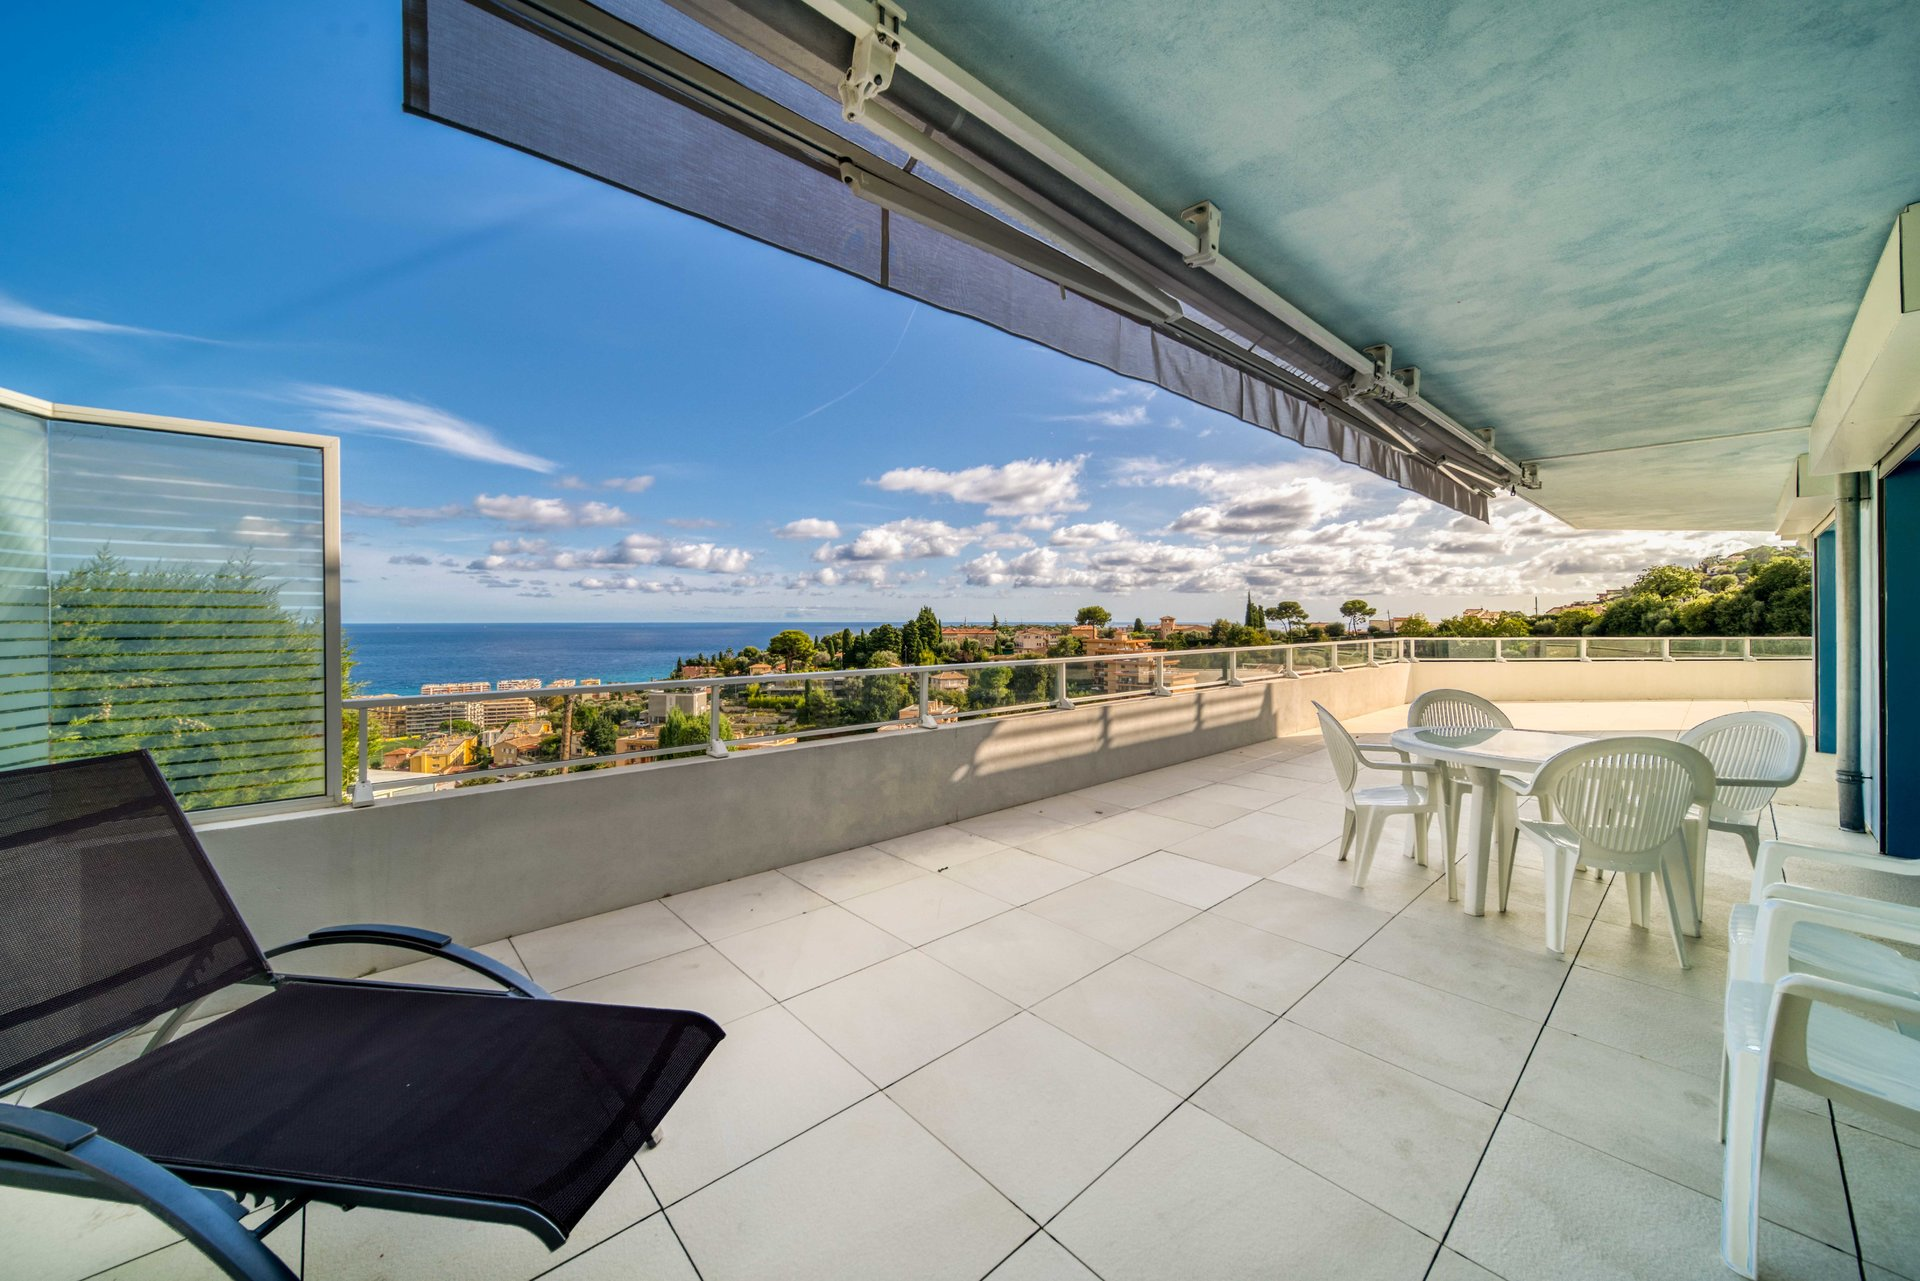 3 ROOM 115 m2 TERRACE 90m2 IN PRIVATE RESIDENCE WITH EXCEPTIONAL SEA VIEW FOR SALE